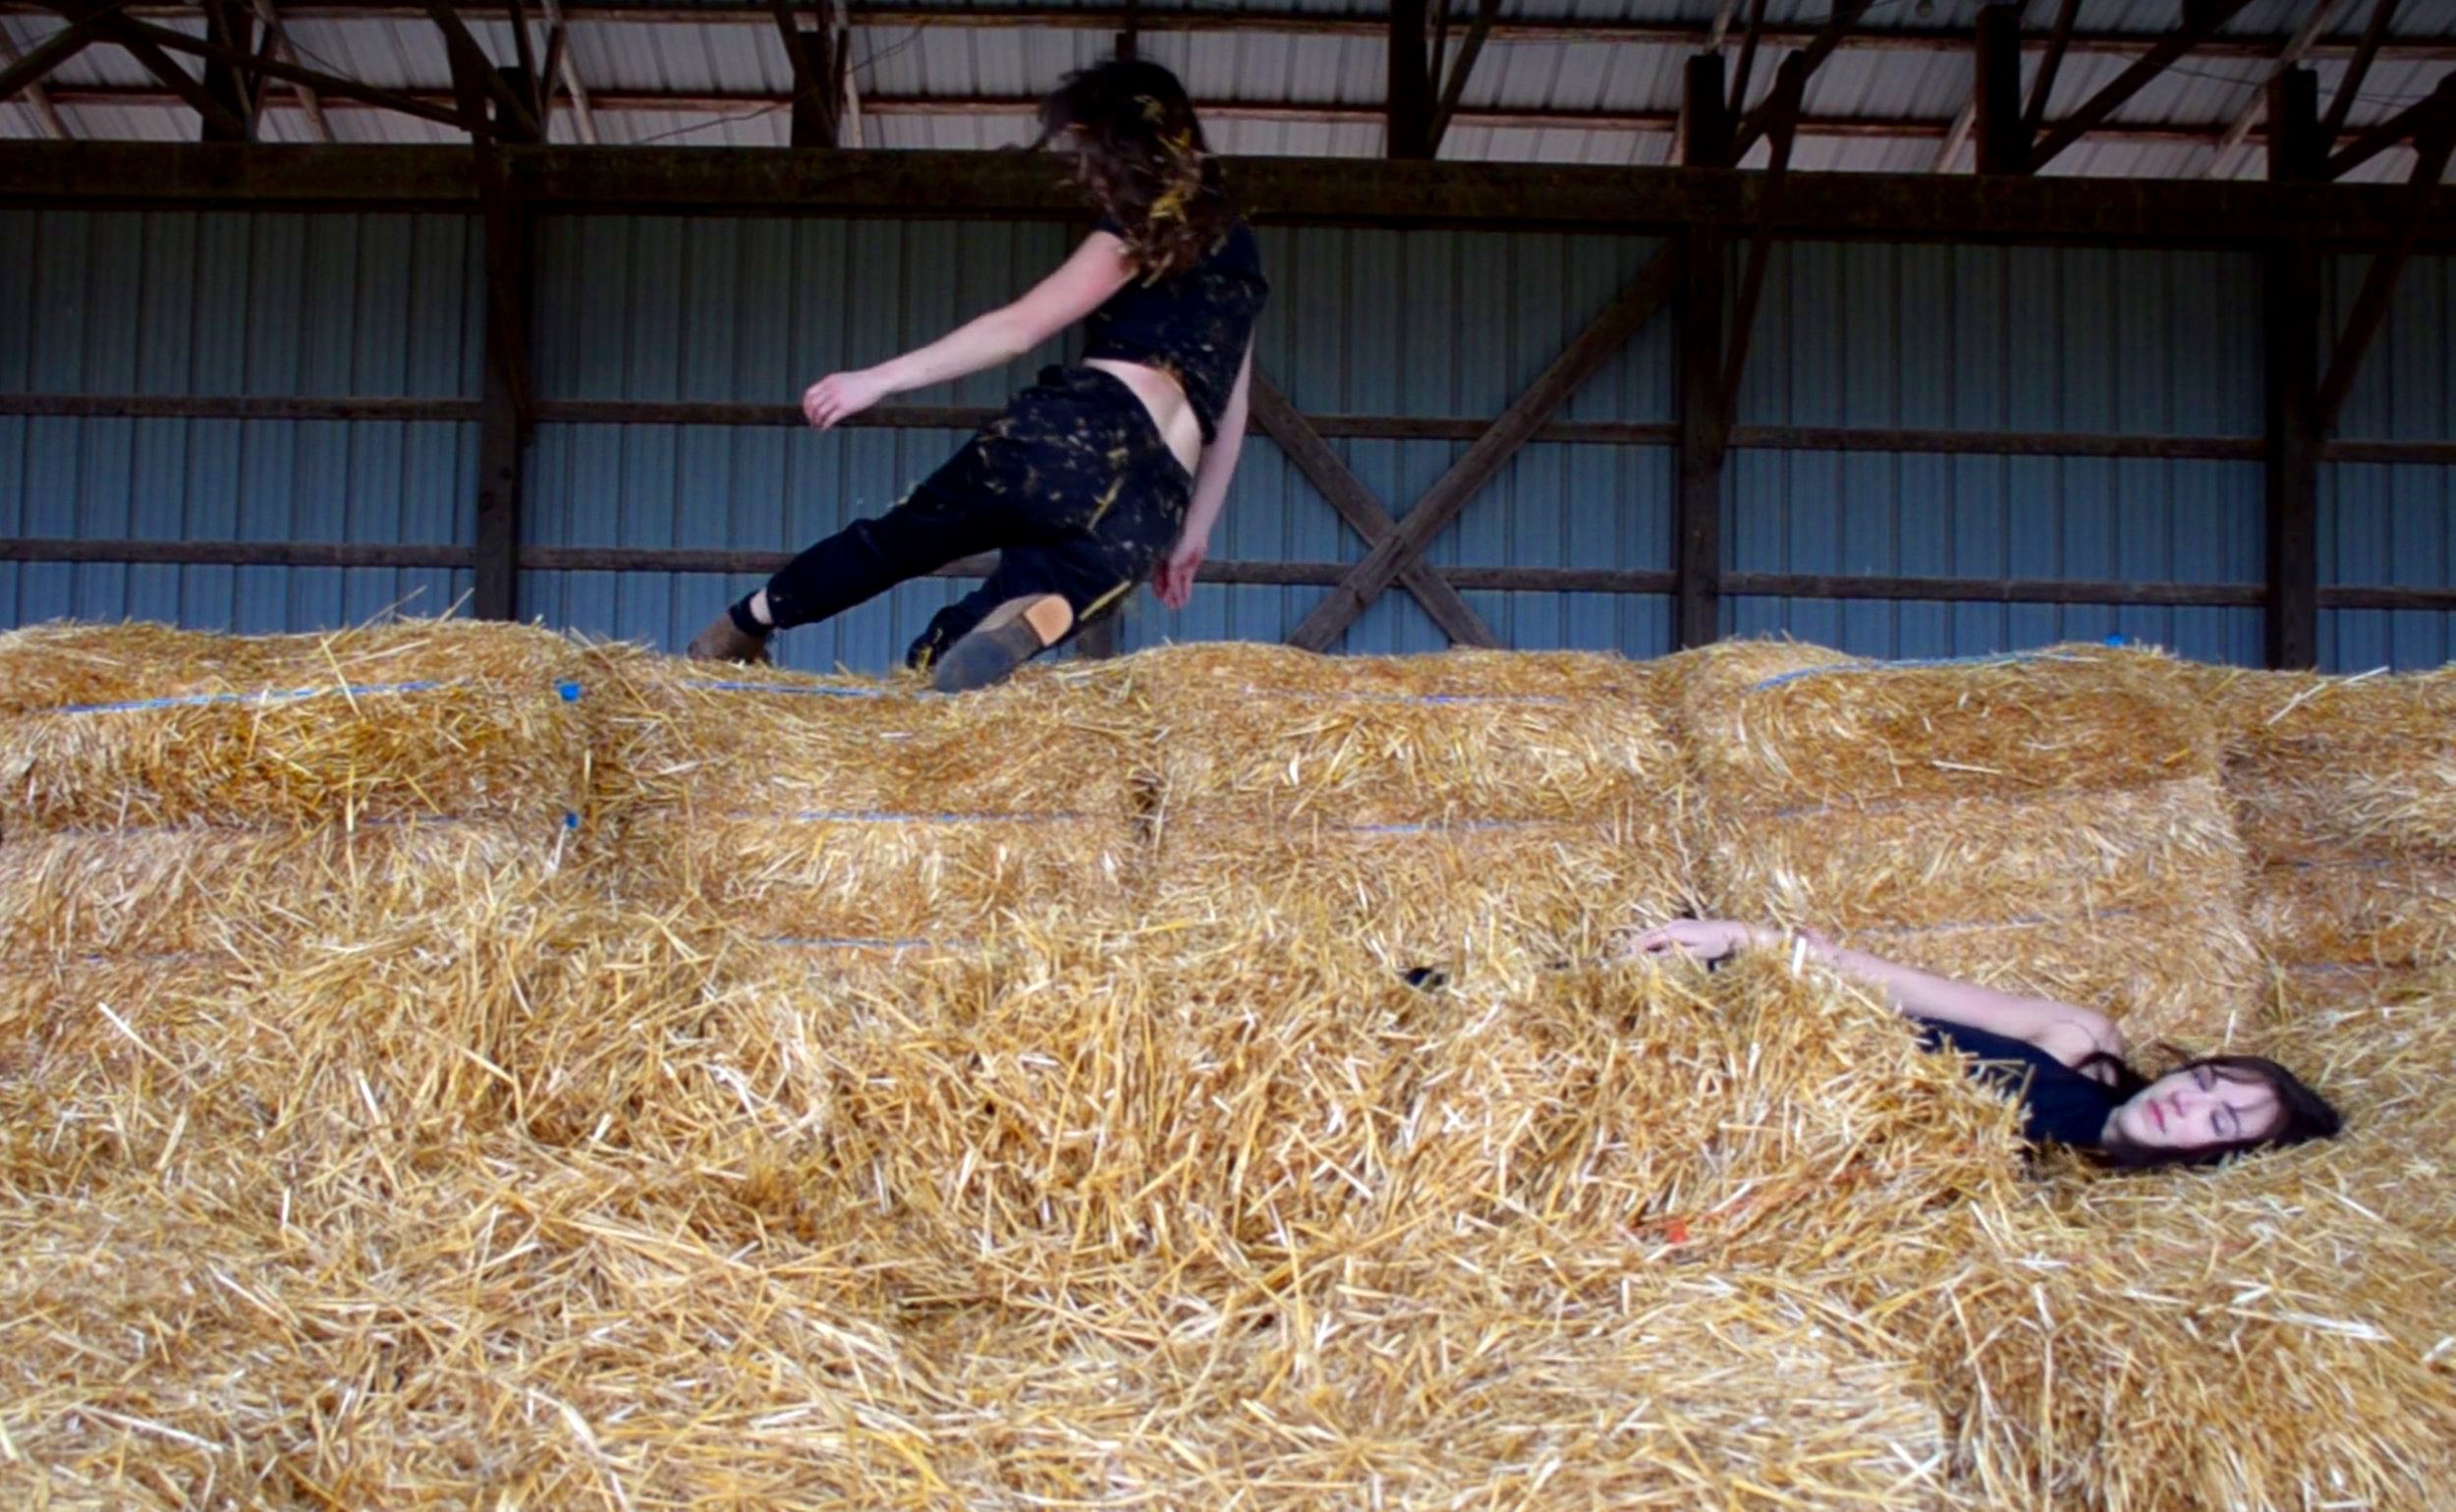 Paper+Fall+hayfall+Leah+O%27Donnell+Choreography+photo+credit+Scott+Lipiec.jpg